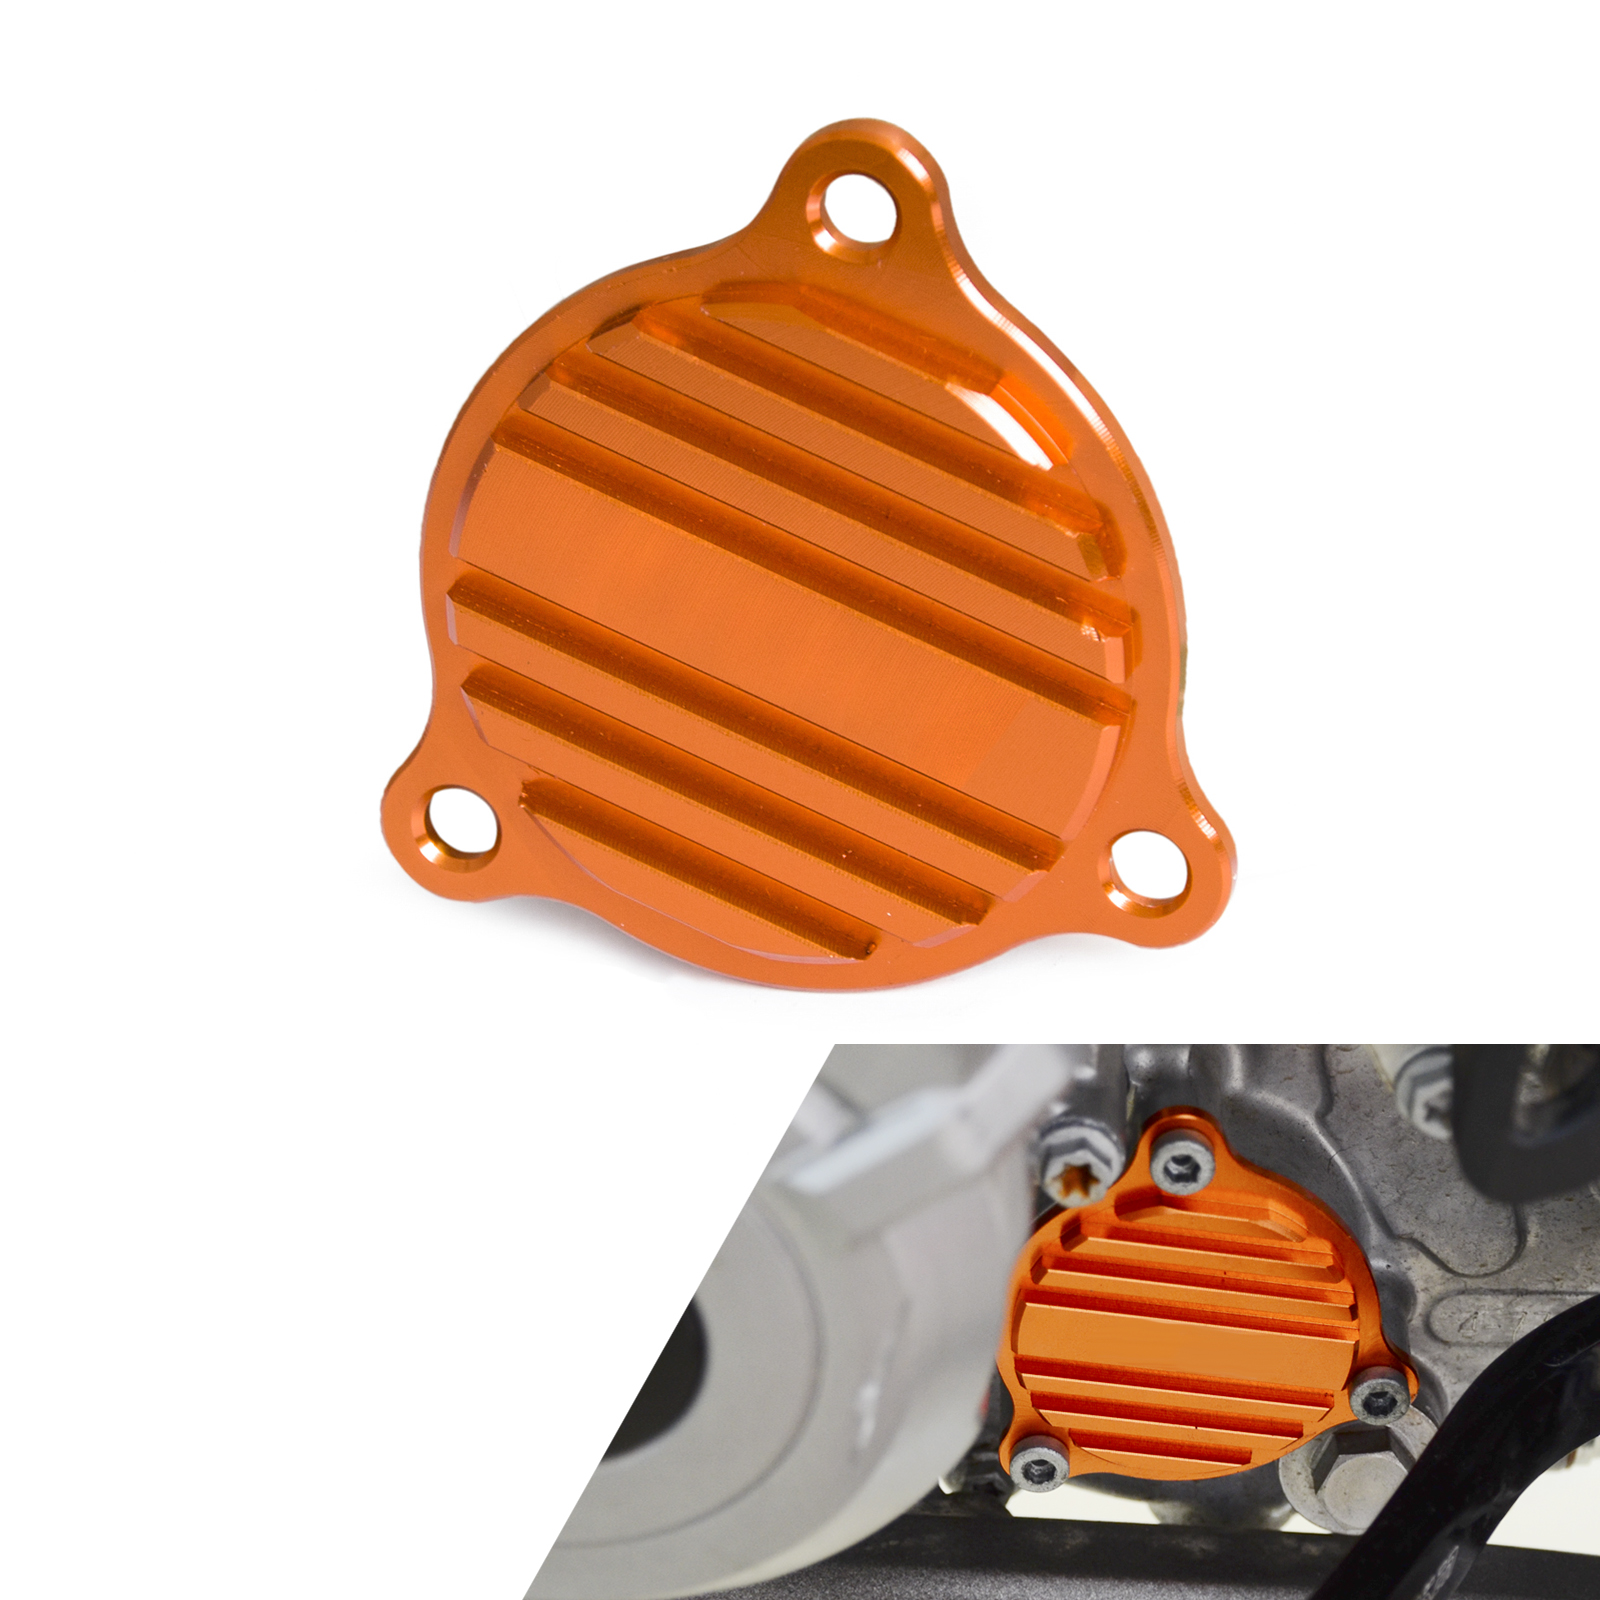 Motorcycle CNC Oil Pump Cover For KTM 250 350 450 500 530 SXF XCF XCW EXC Six Days XC-W 2014 2015 2016